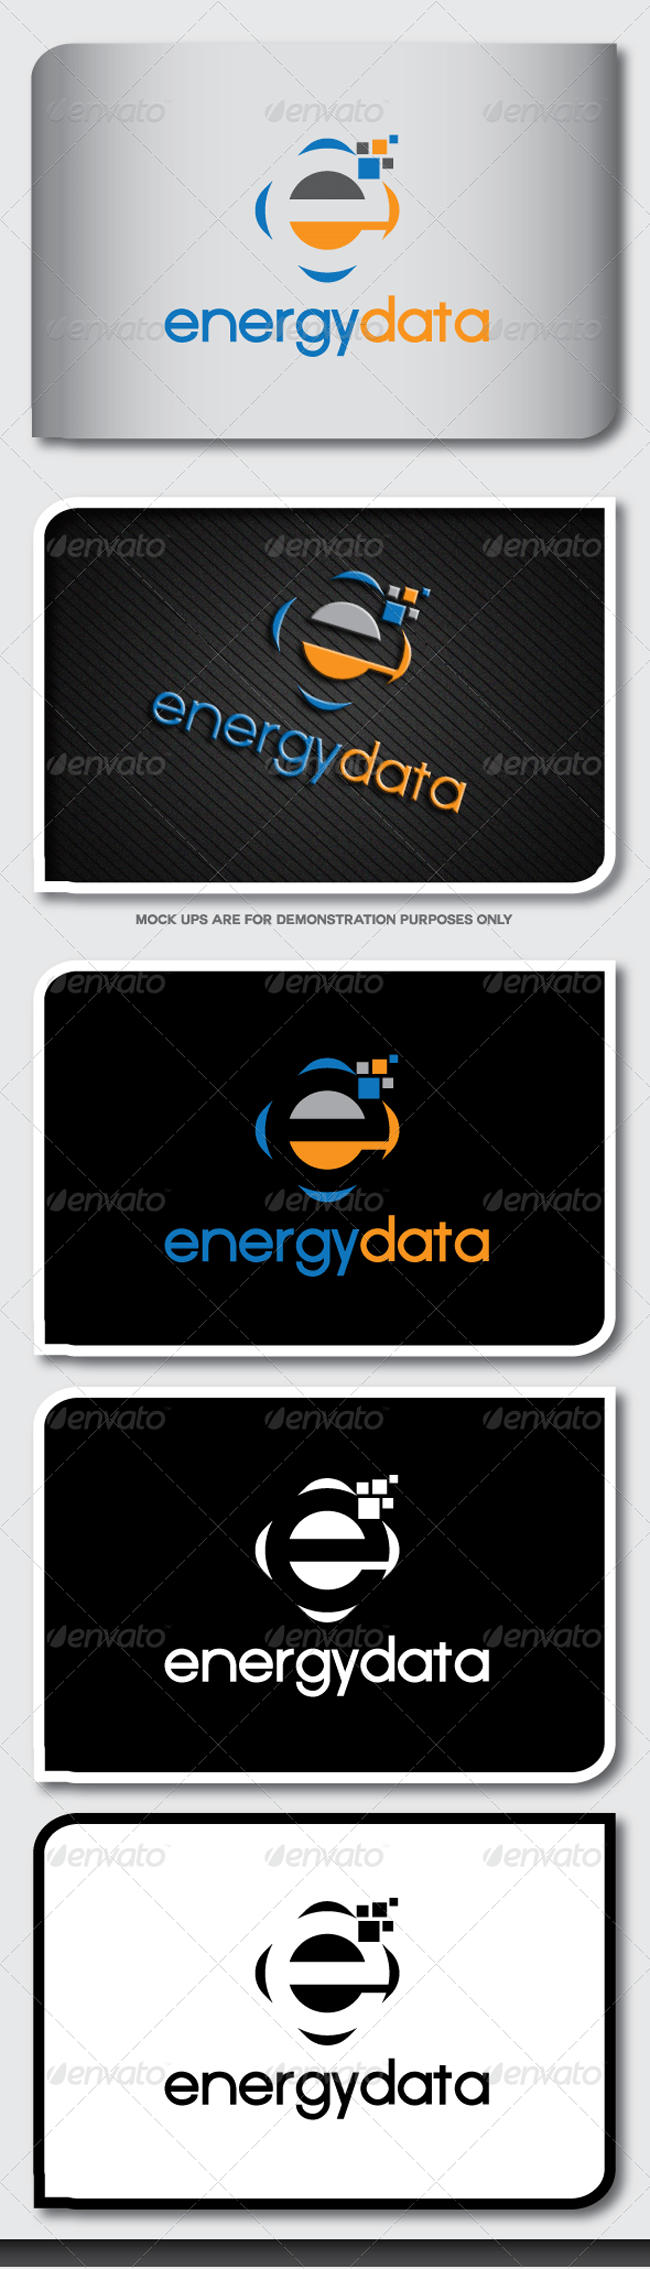 Energy Data Logo